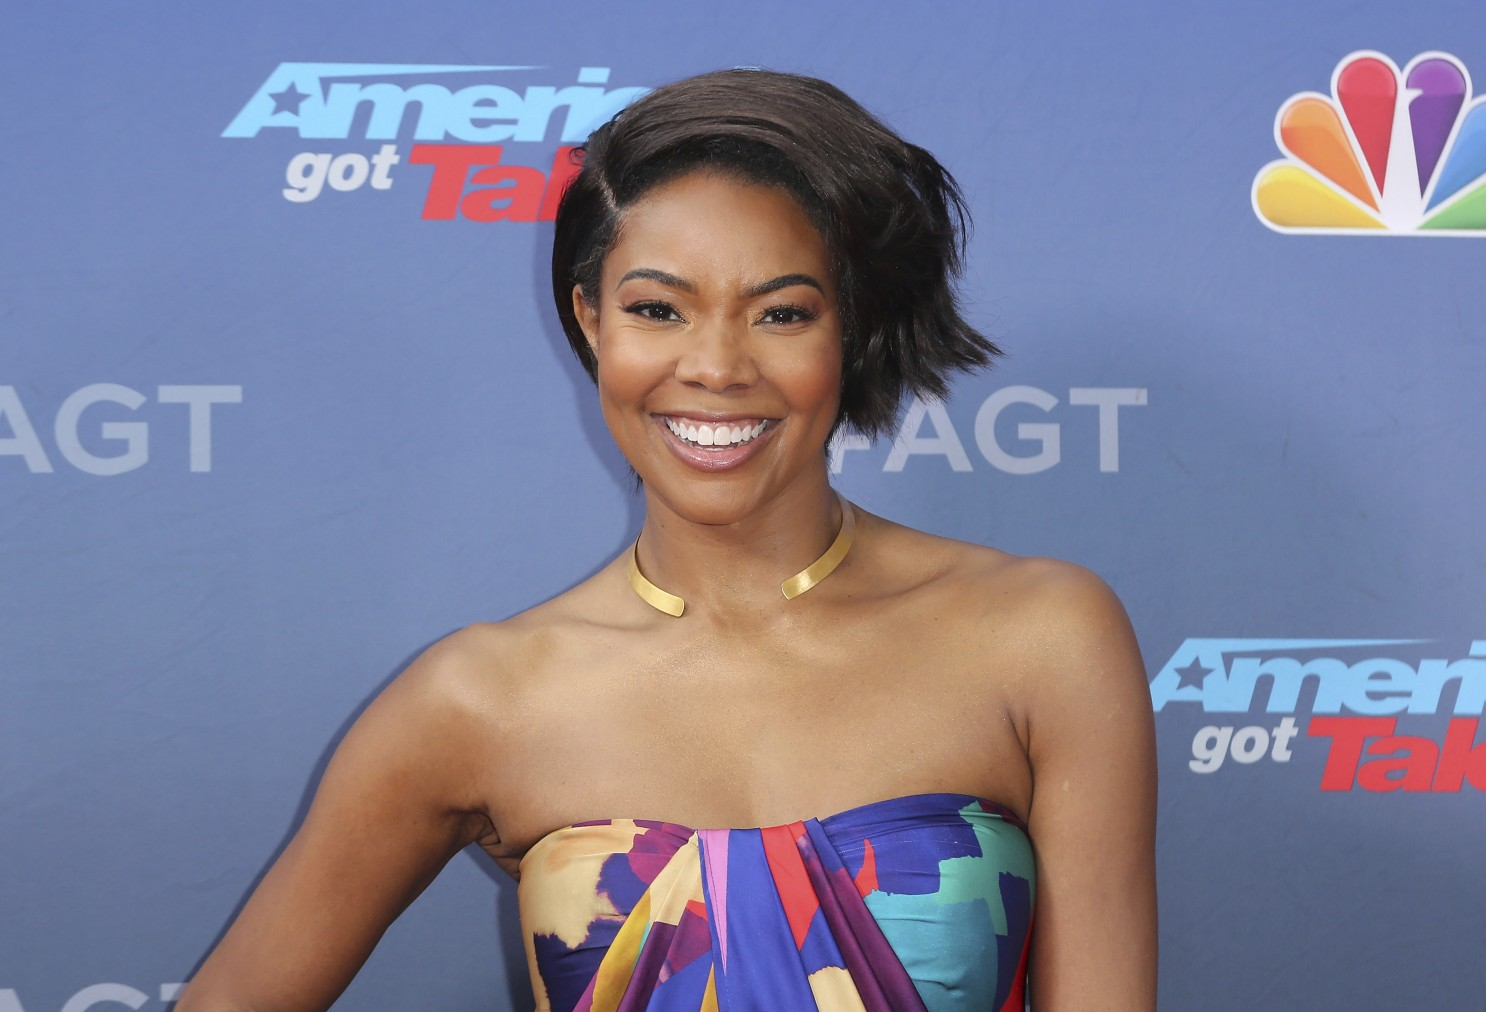 gabrielle-union-praises-an-amazing-lady-symone-d-sanders-see-her-emotional-message